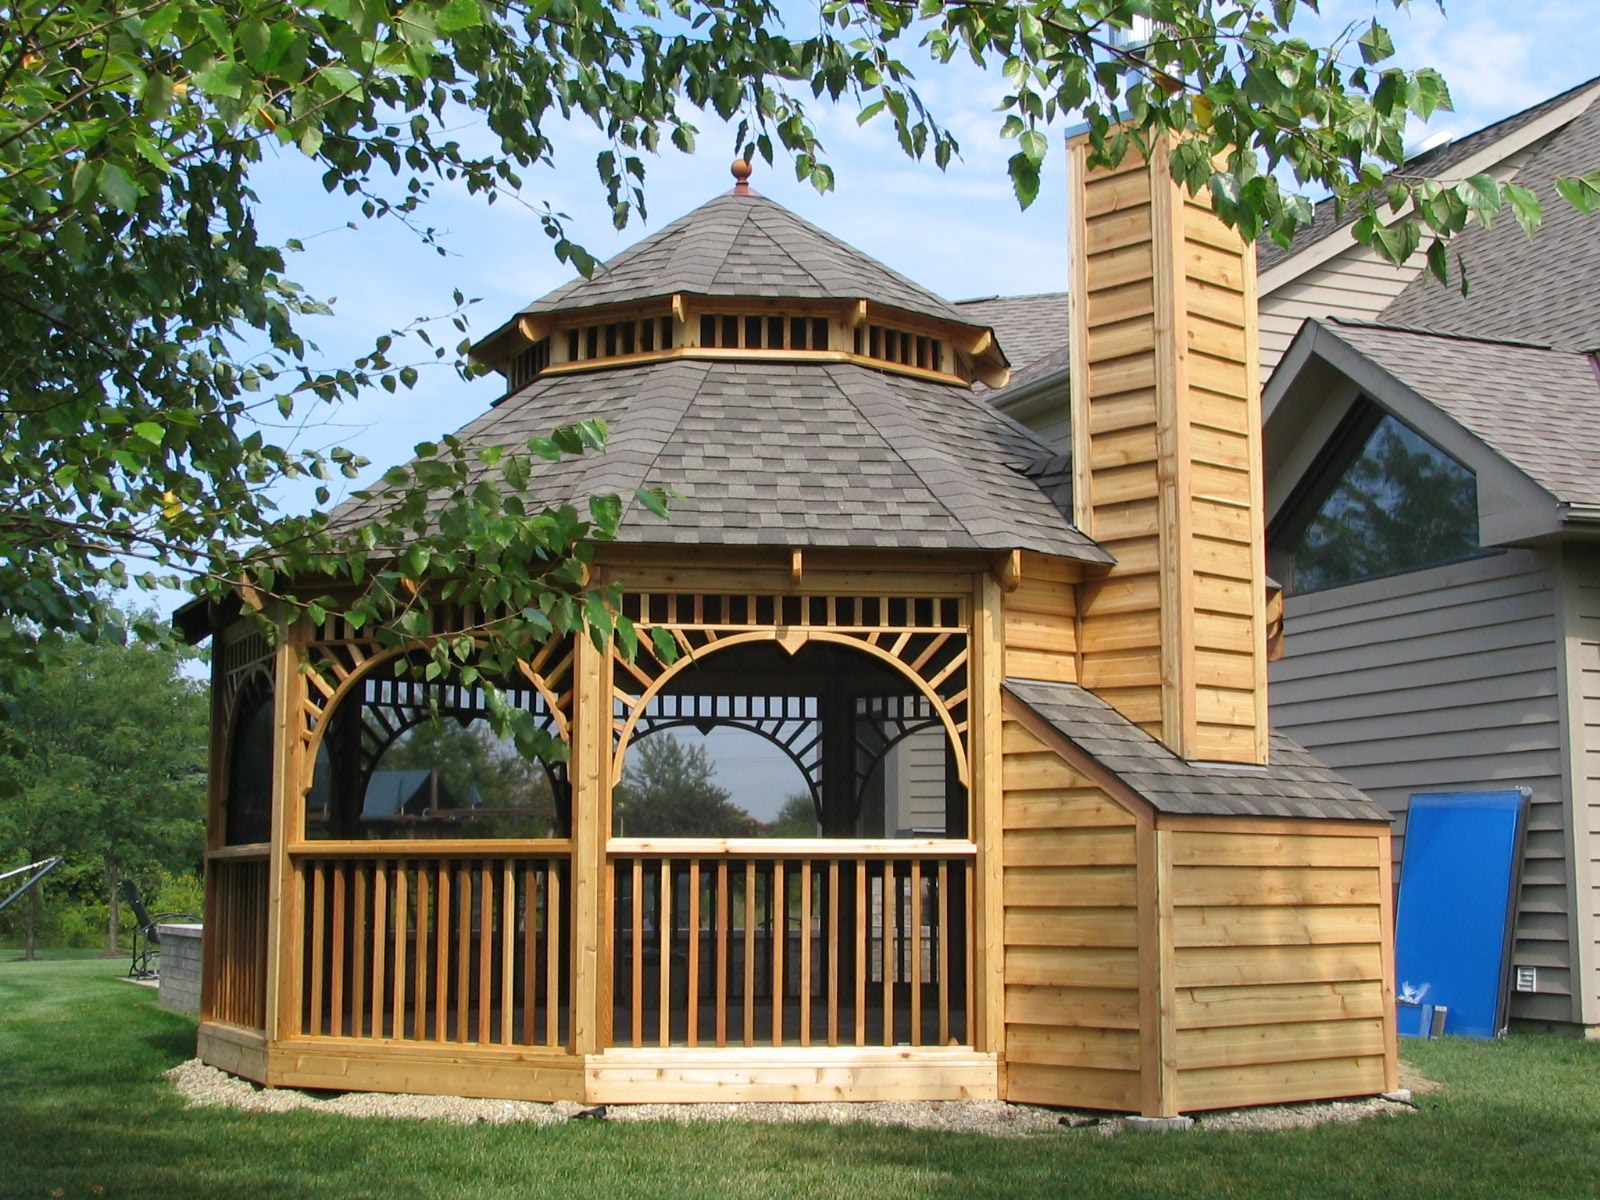 Metal plans for gazebo construction metal gazebo kits for Outdoor gazebo plans with fireplace